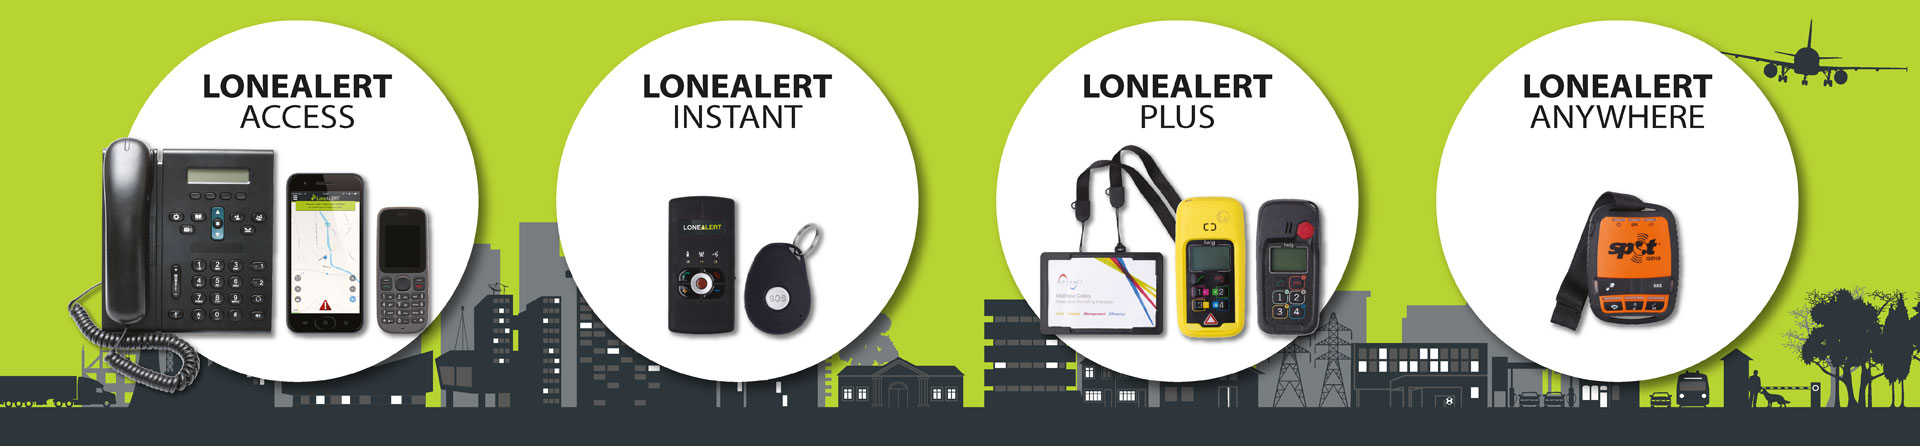 Risk profile, personal preference or specific requirements all factor into the right choice of lone working devices. Understand the range here.